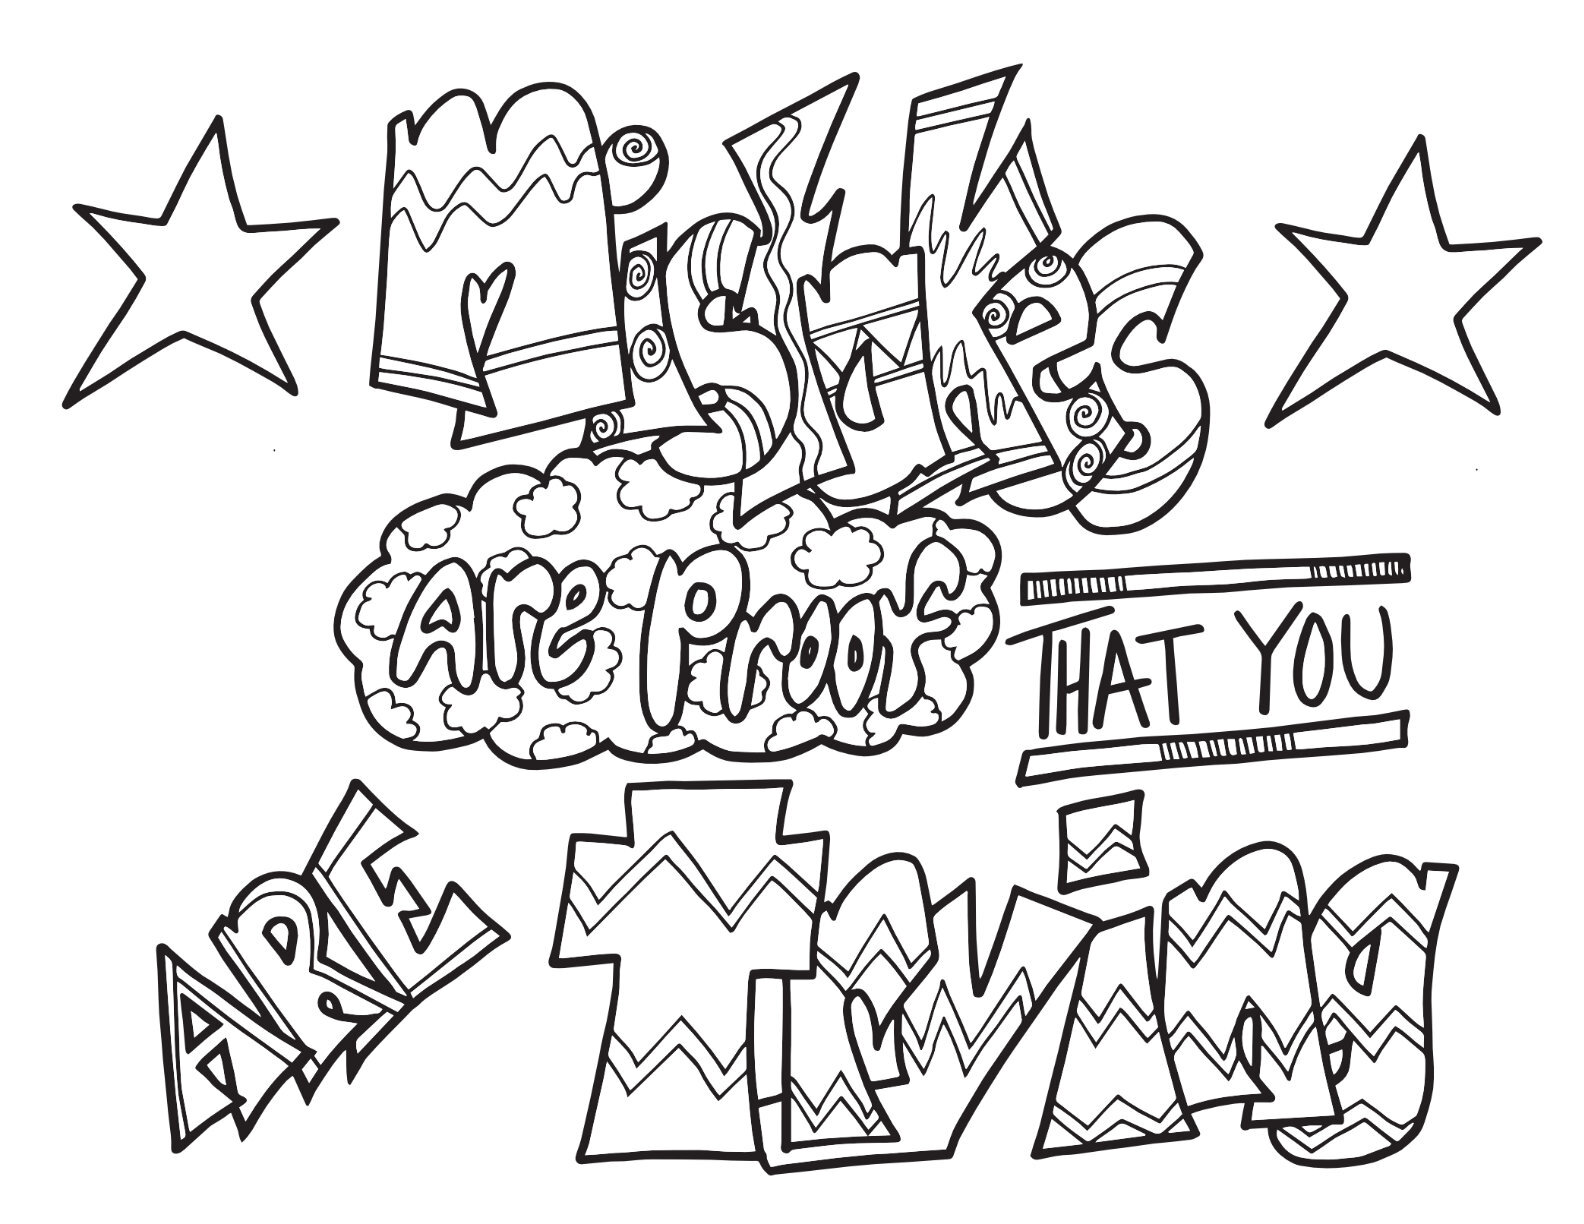 mistakes space proof that you are trying free printable coloring page